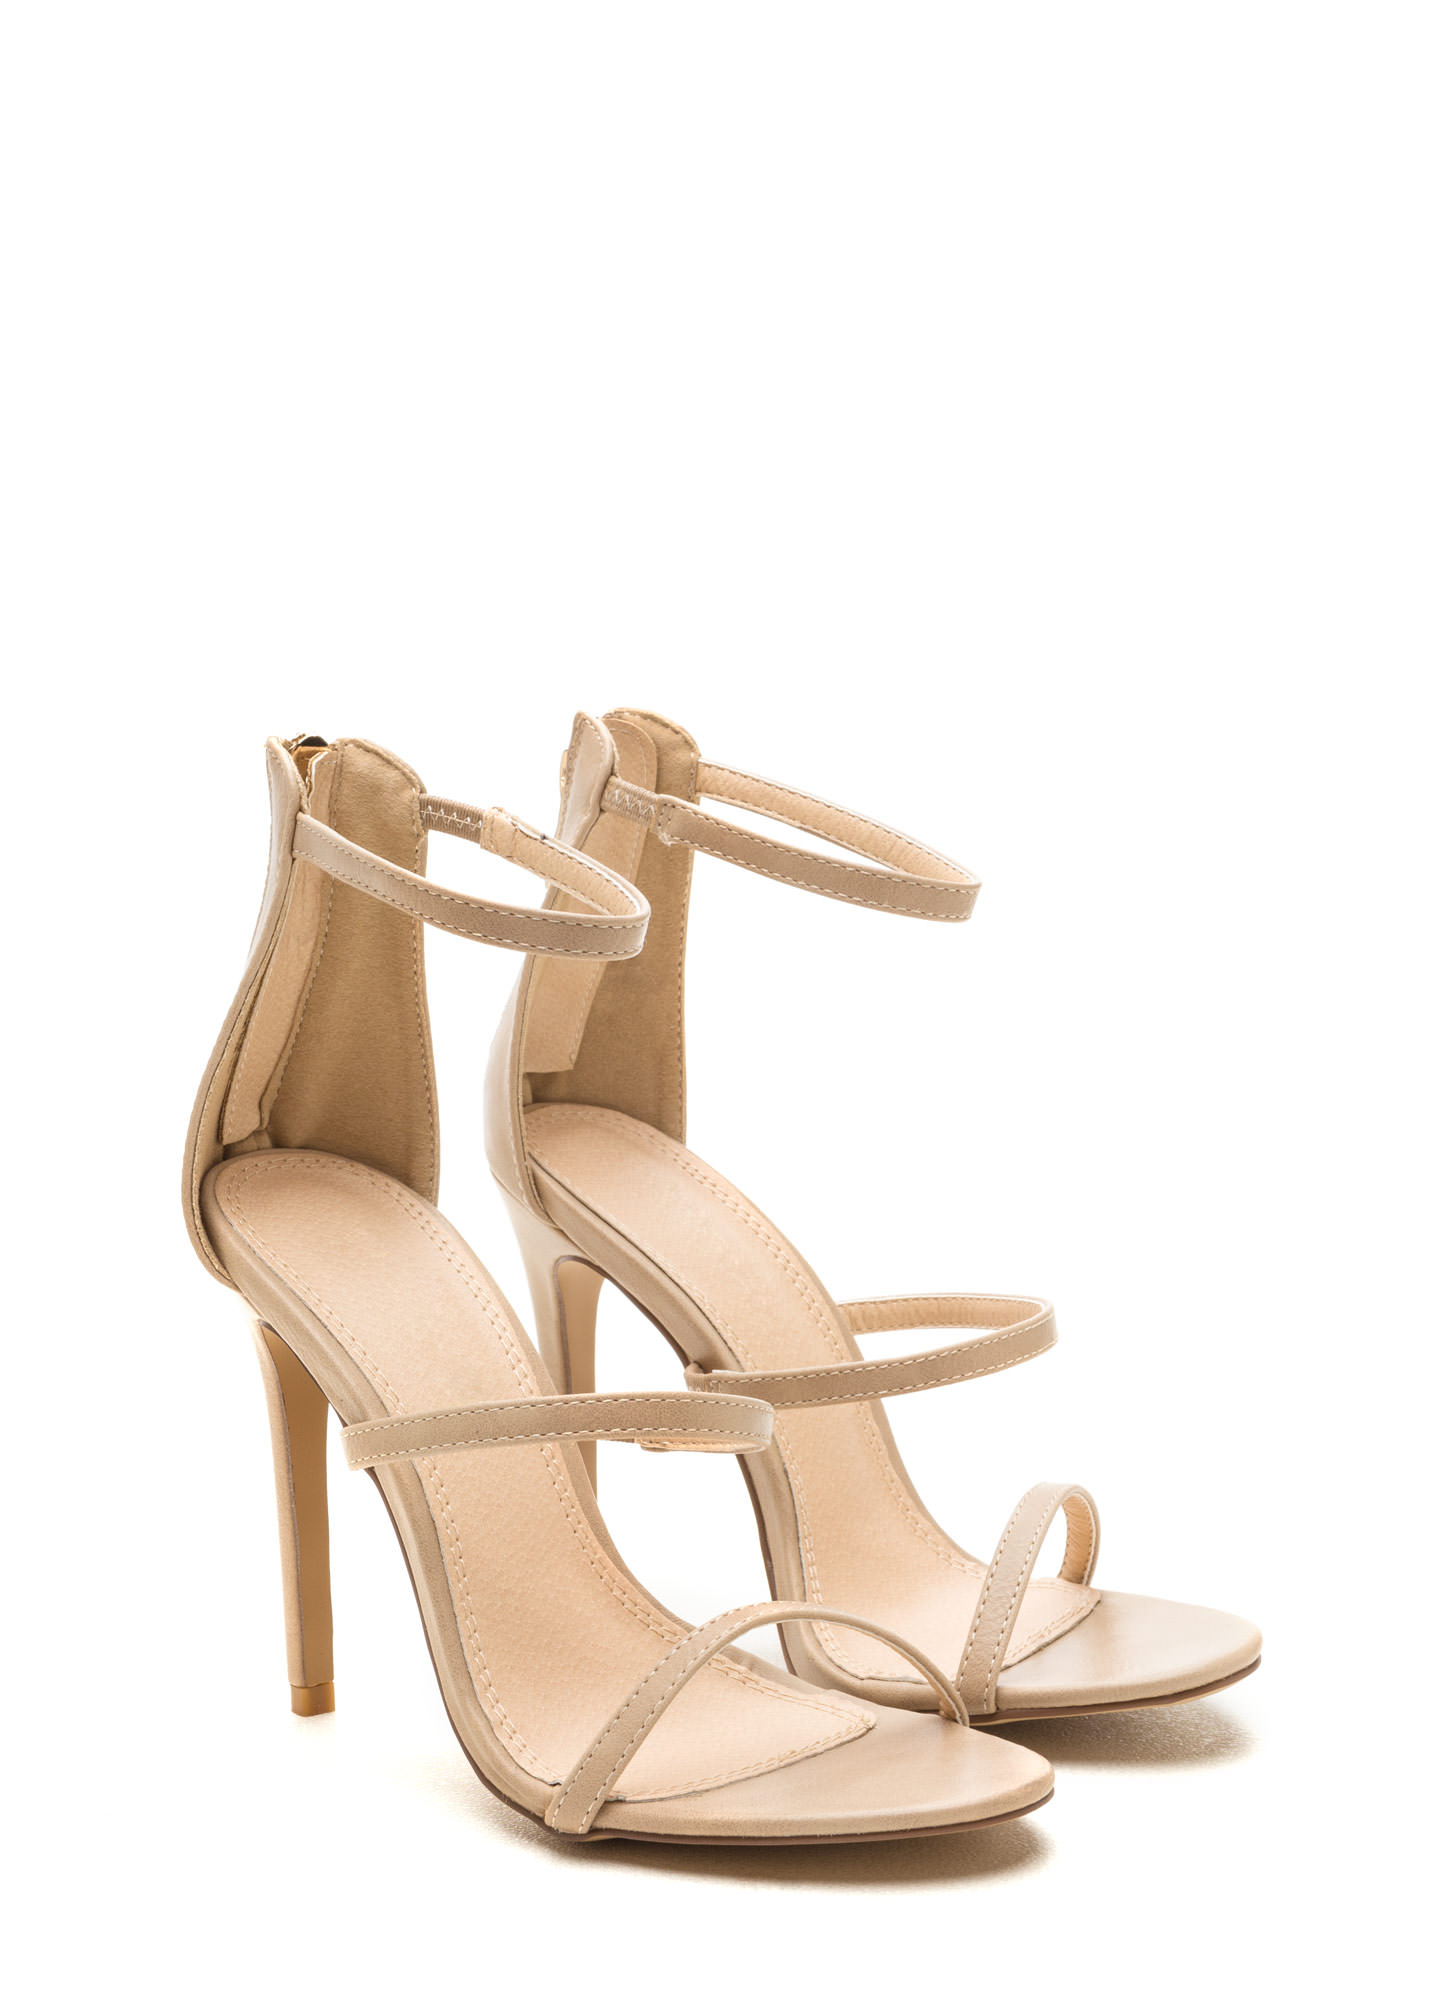 Strappy Life Single-Sole Heels COBALT TAN BLACK BLUSH NEONCORAL